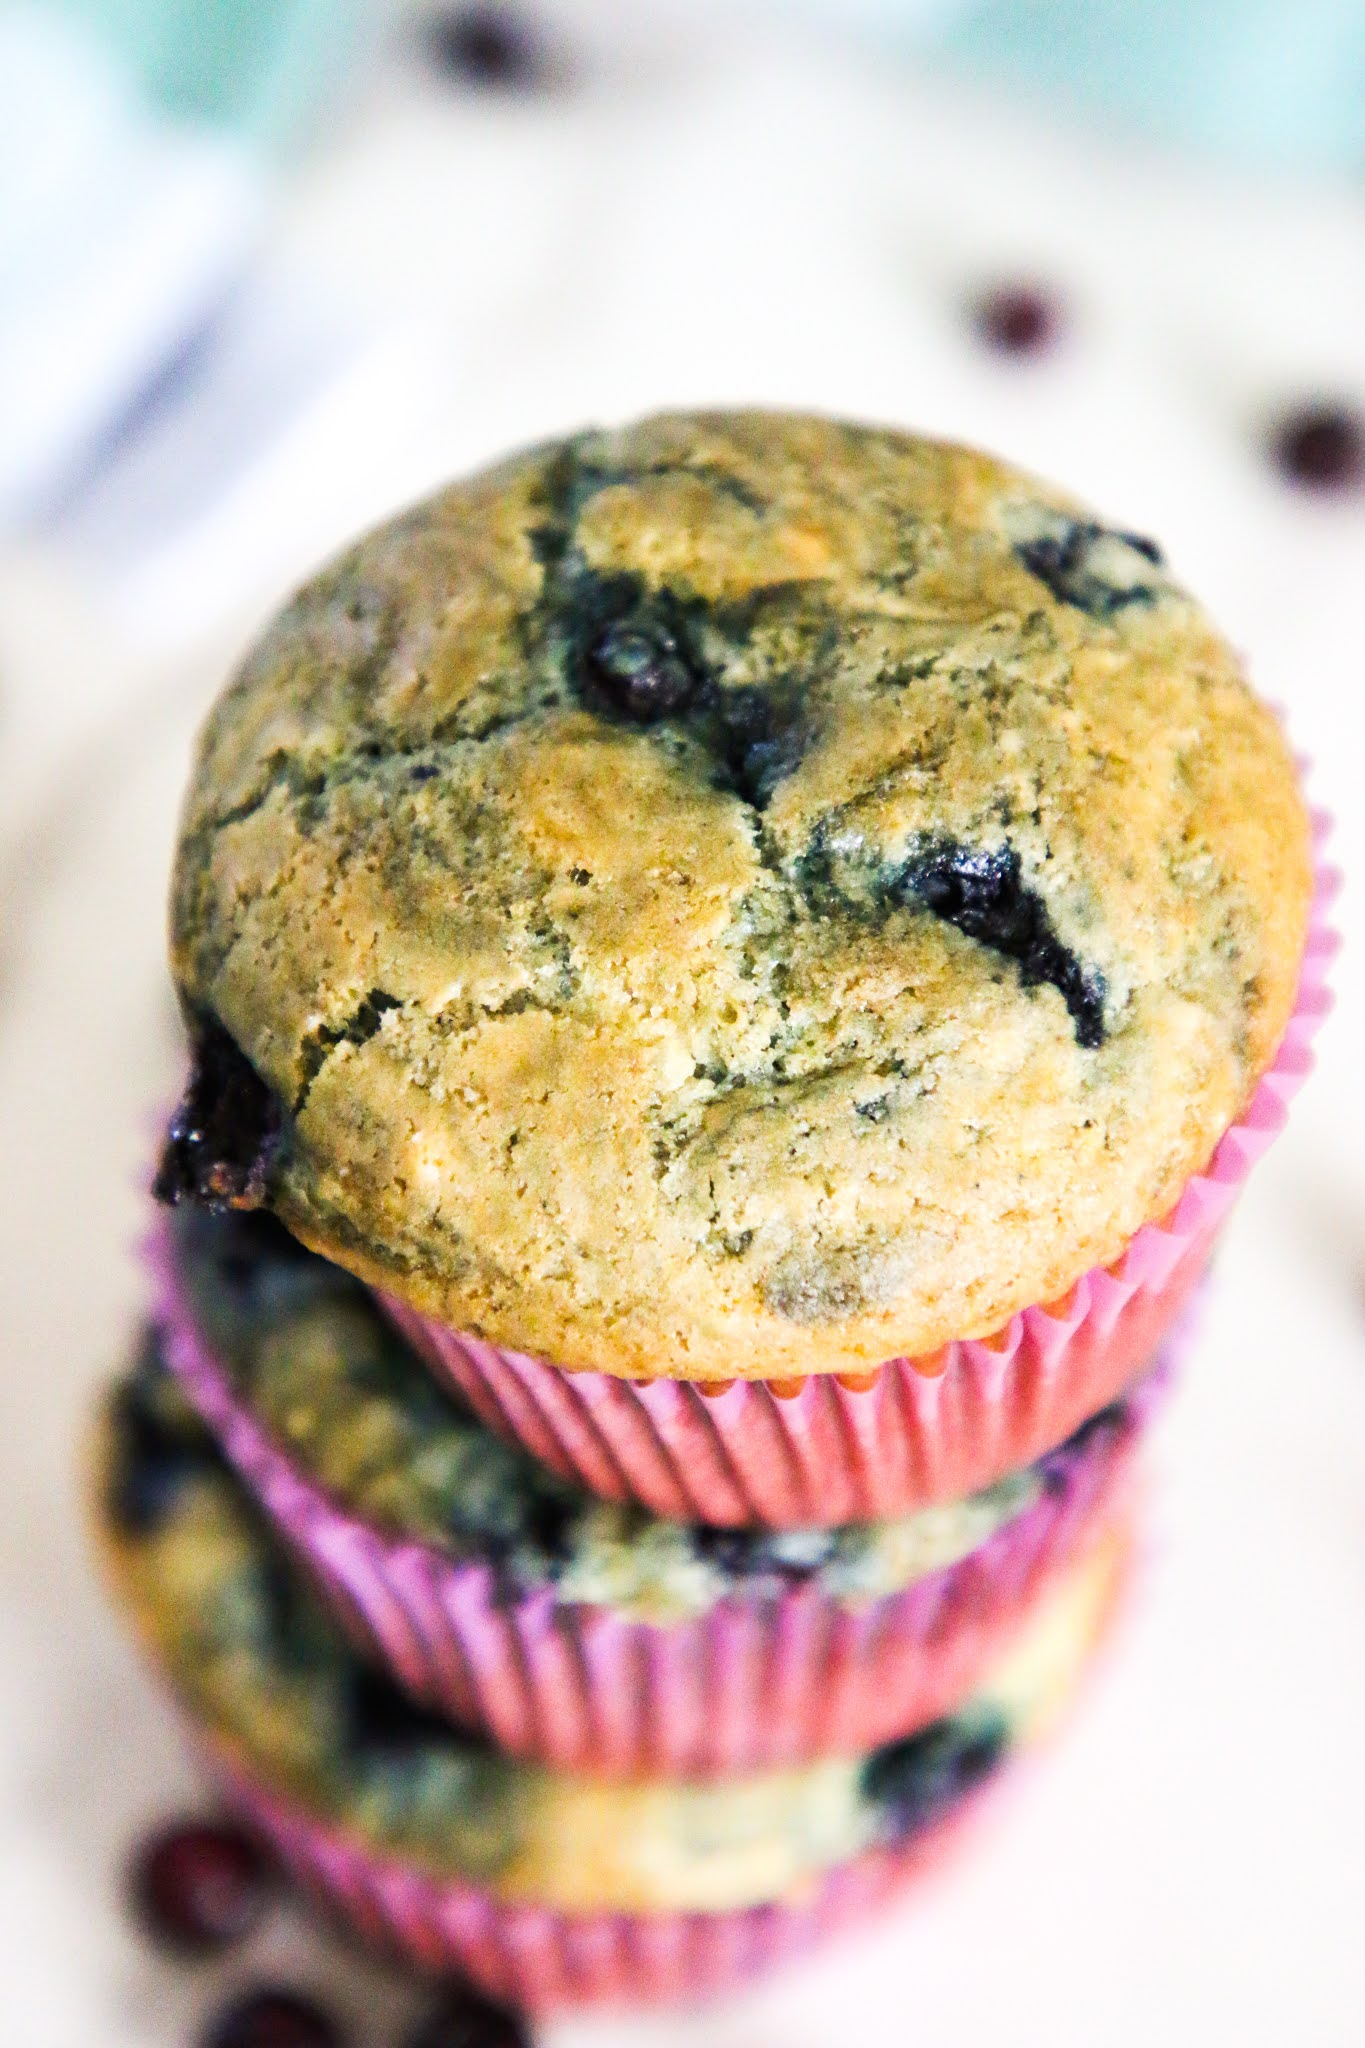 Three blueberry muffins stacked on top of each other on a marble table with blueberries scattered in the background.